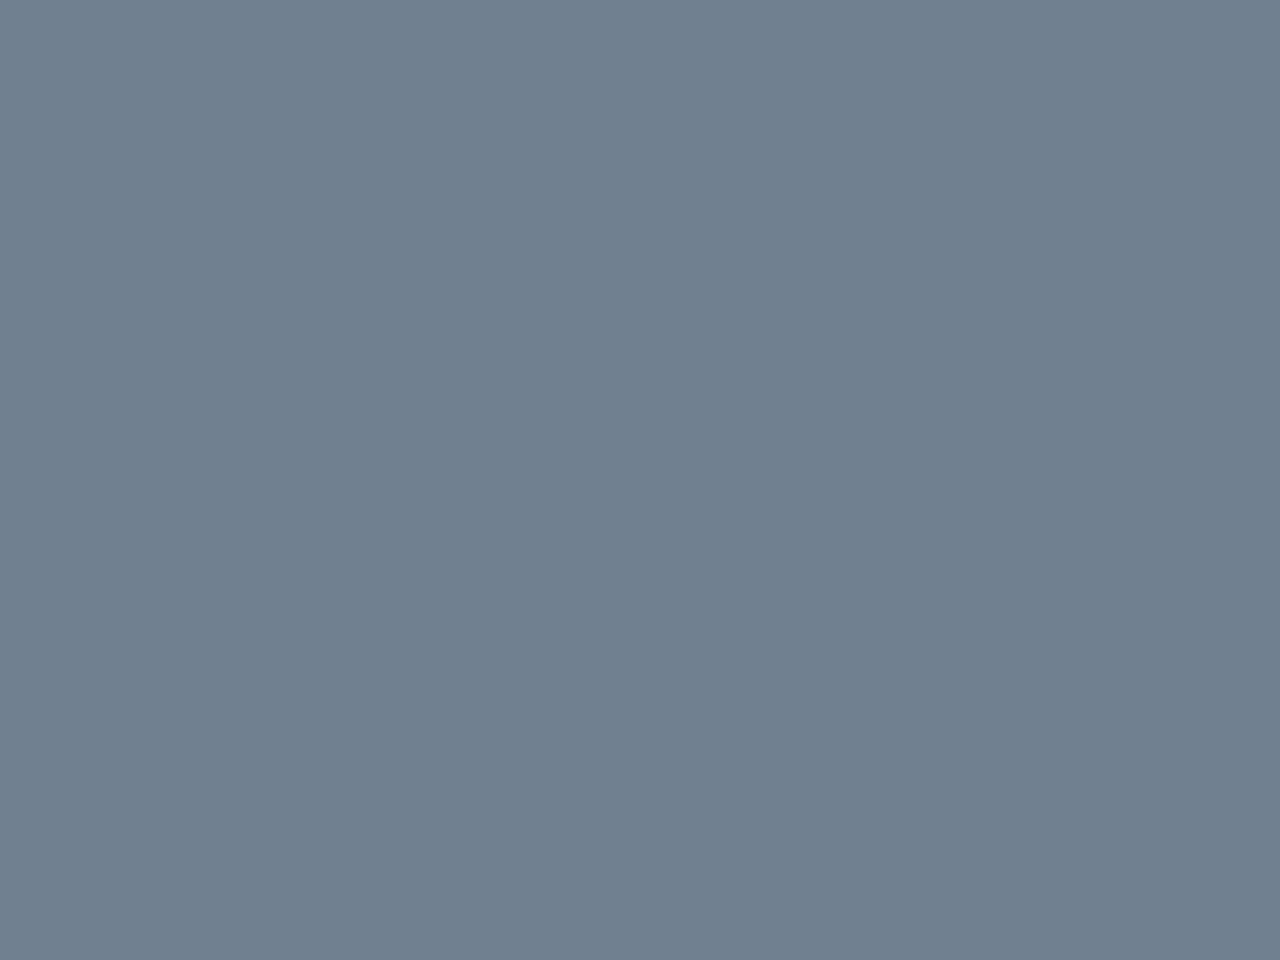 1280x960 Slate Gray Solid Color Background